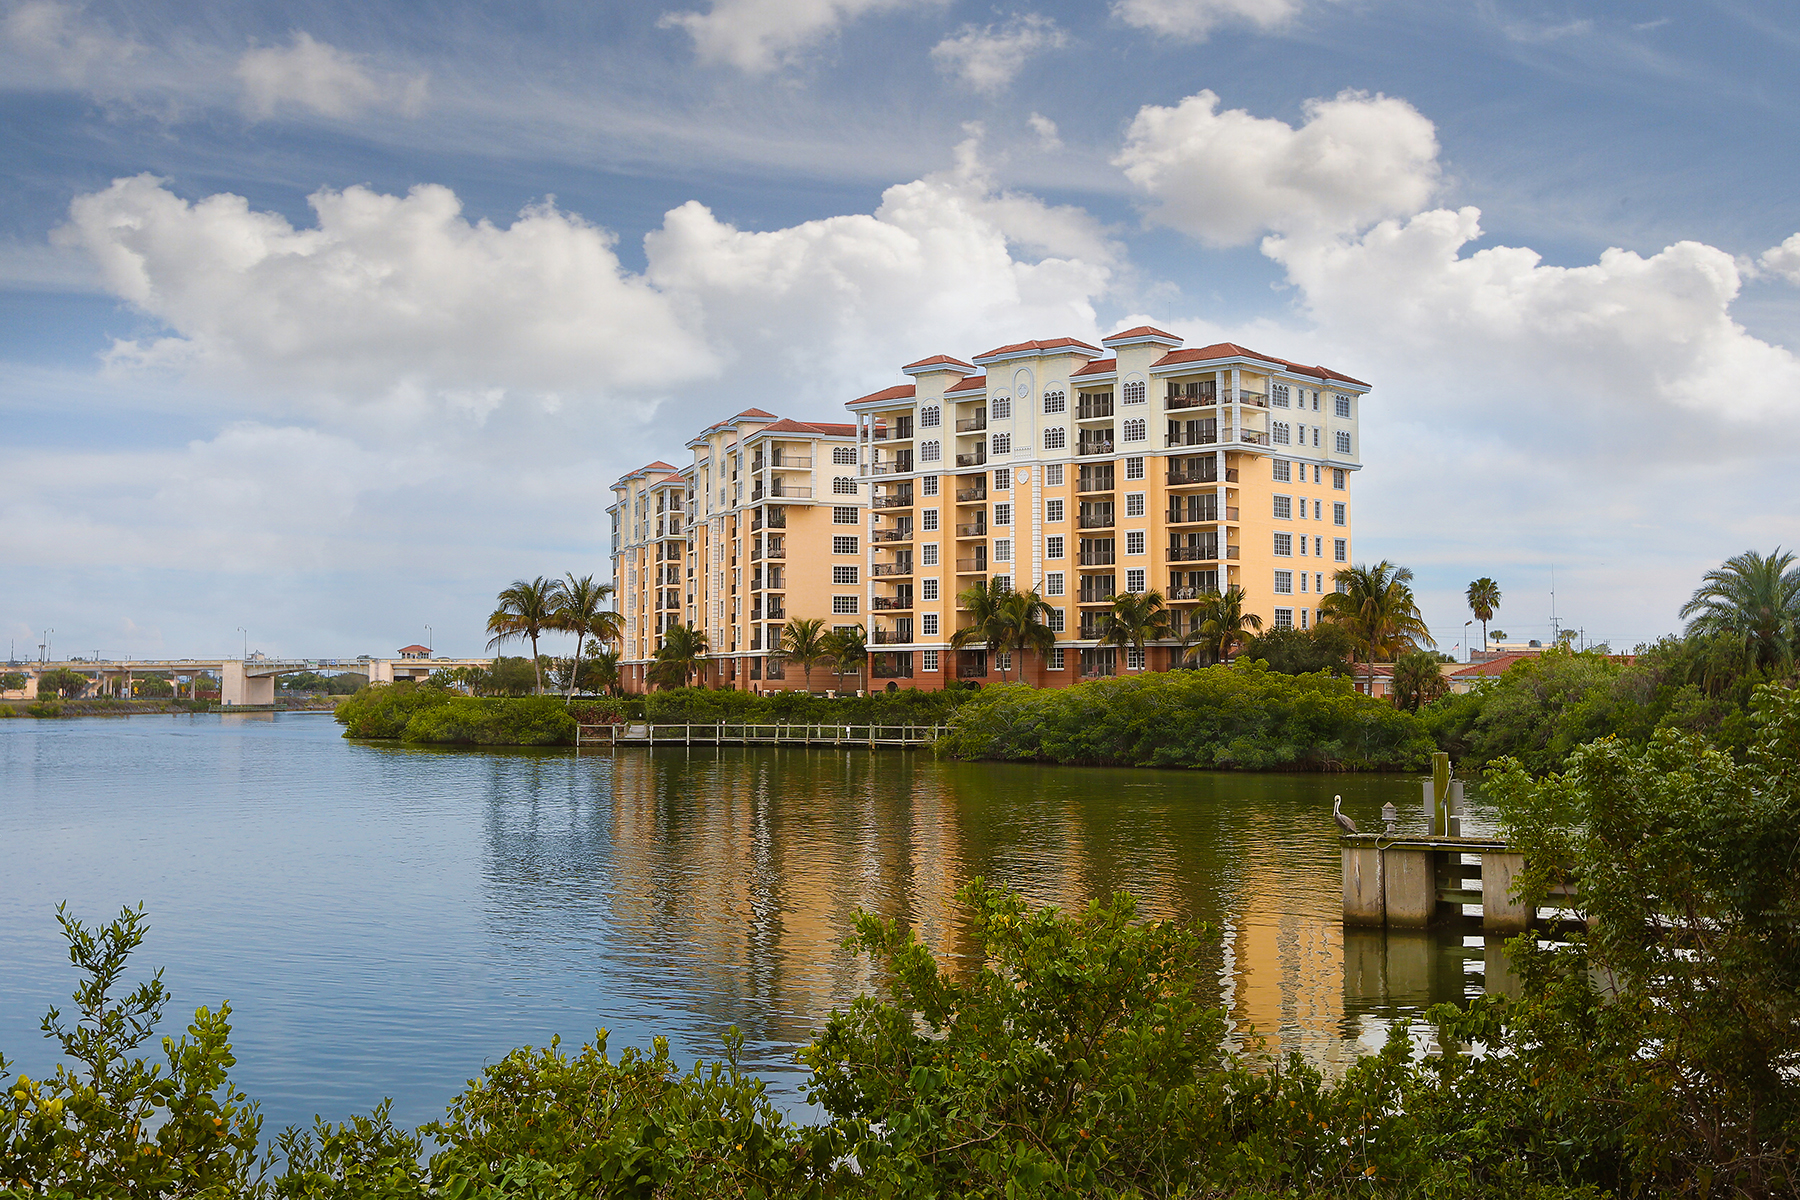 Condominium for Sale at WATERFRONT ON VENICE ISLAND 157 Tampa Ave E 608 Venice, Florida, 34285 United States